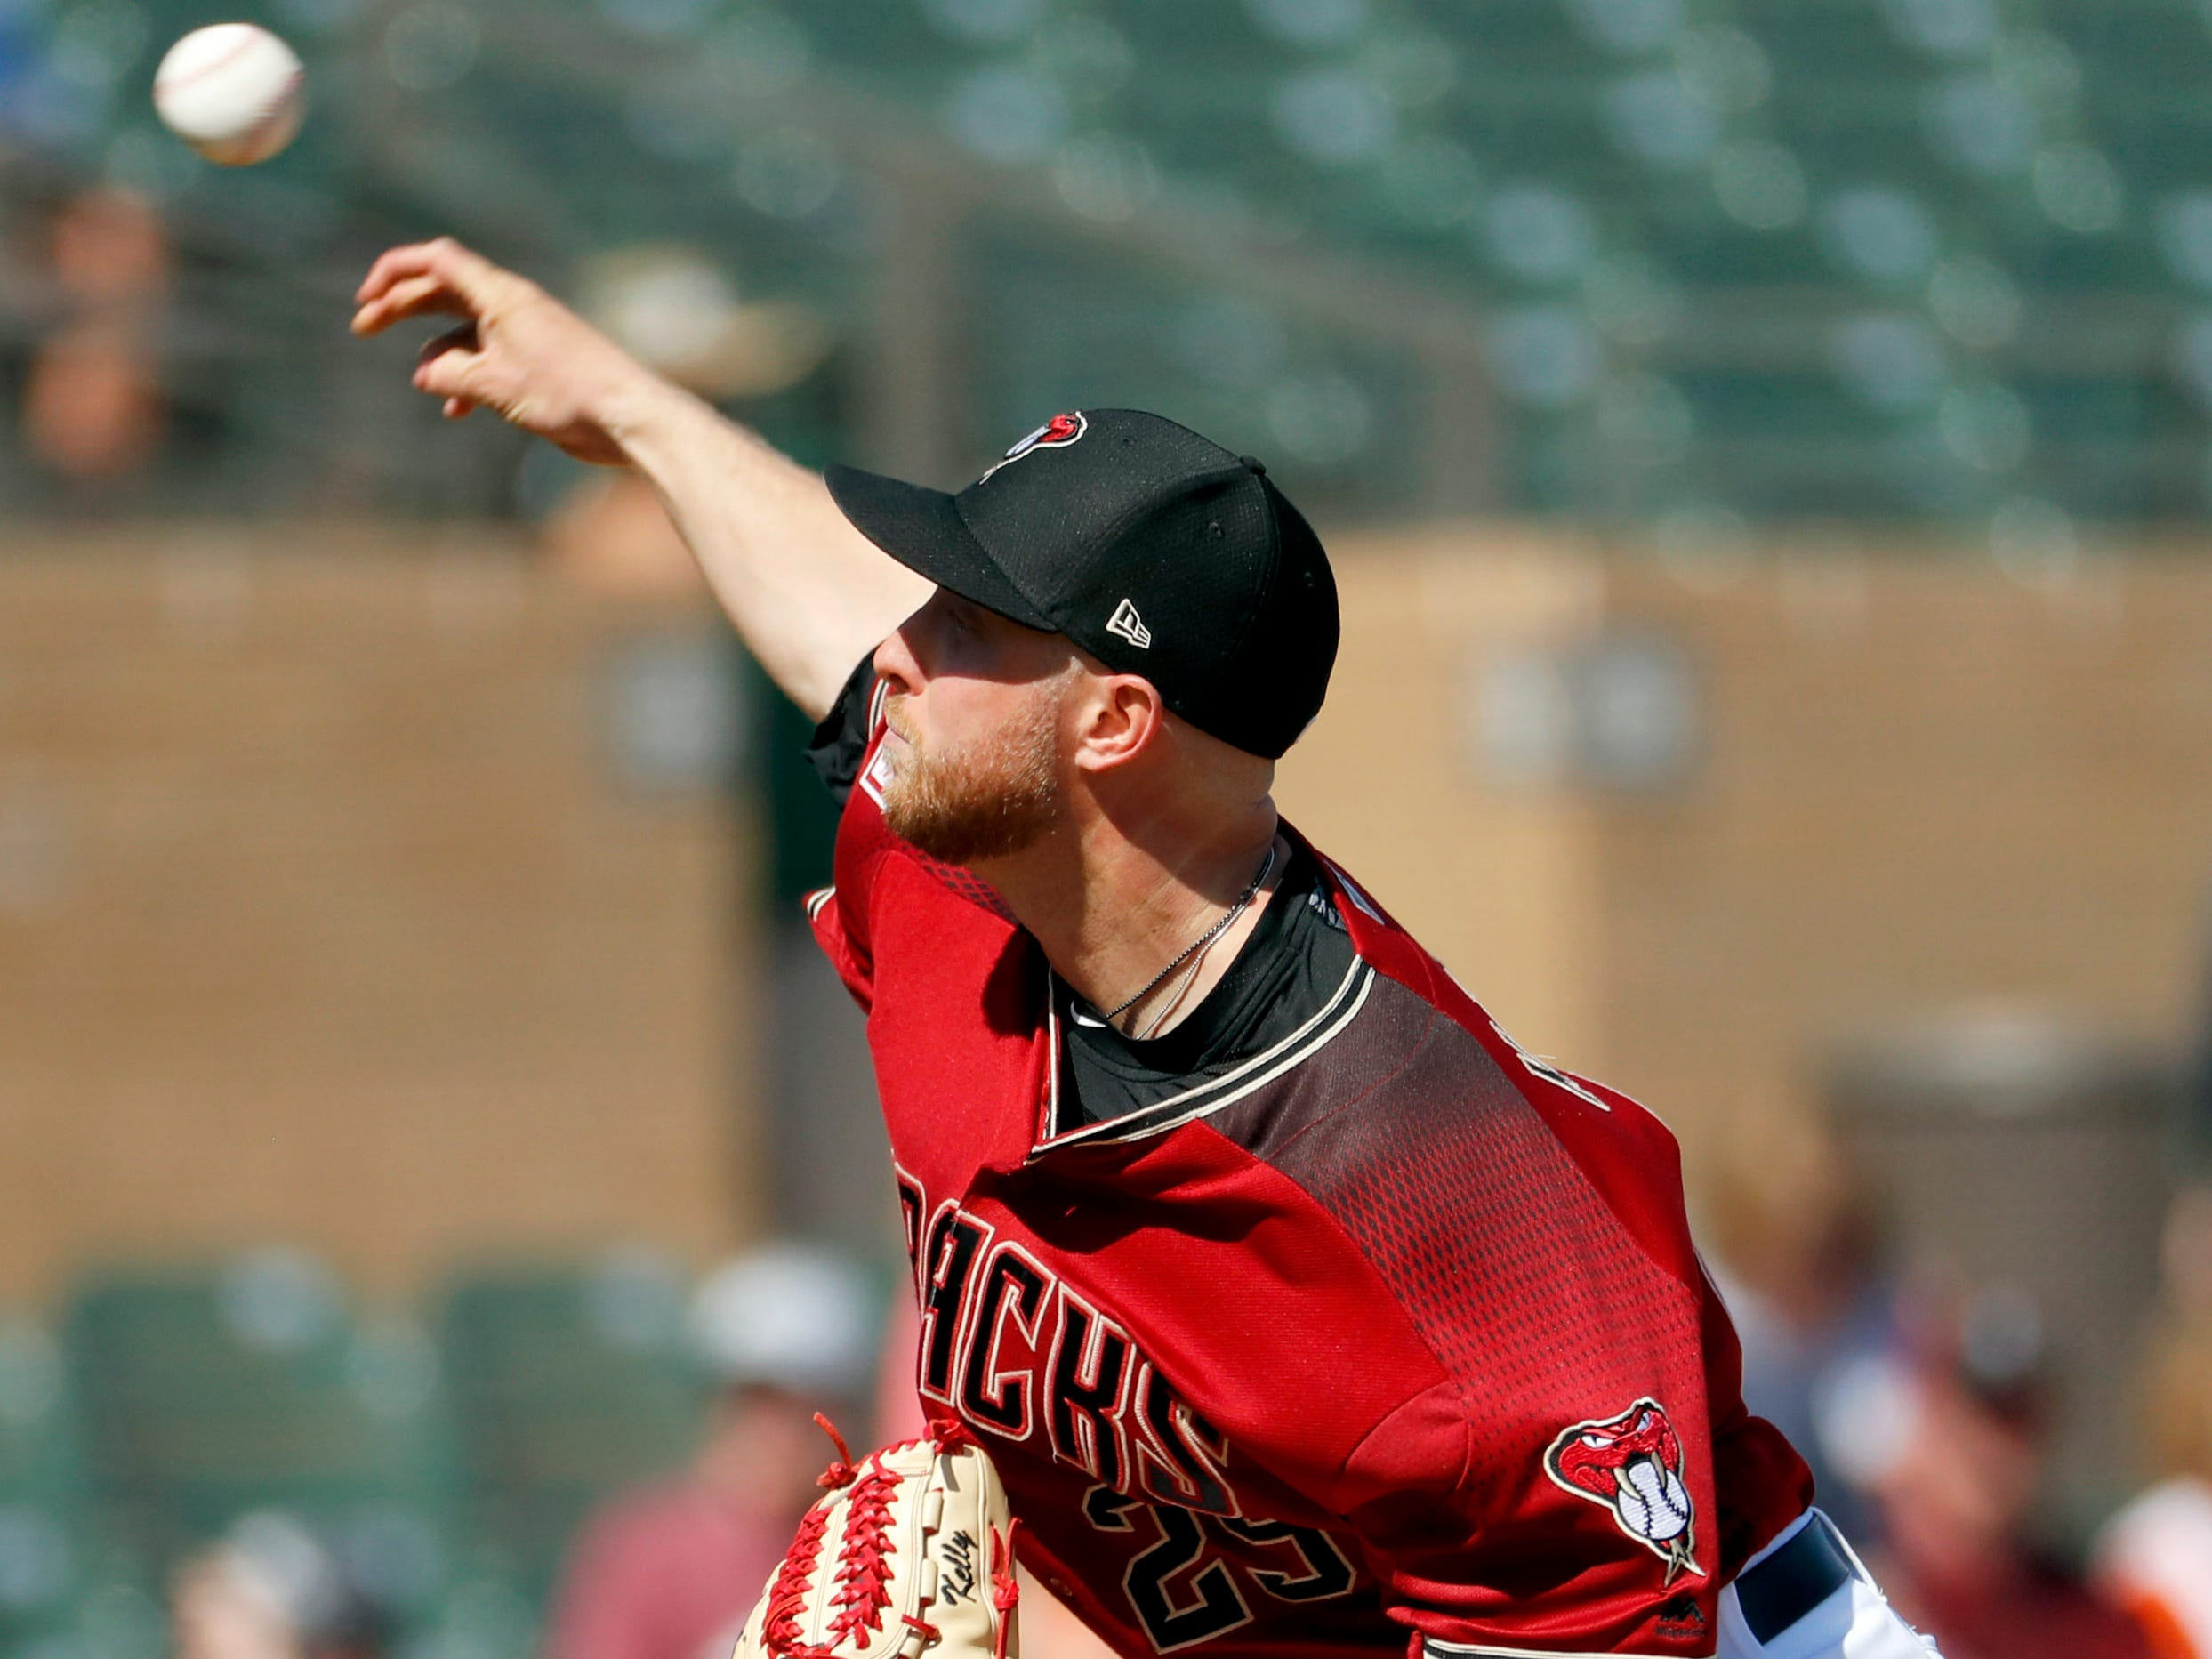 Arizona Diamondbacks pitcher Merrill Kelly throws against the Cleveland Indians during the first inning of a spring training baseball game, Thursday, Feb. 28, 2019, in Scottsdale, Ariz.